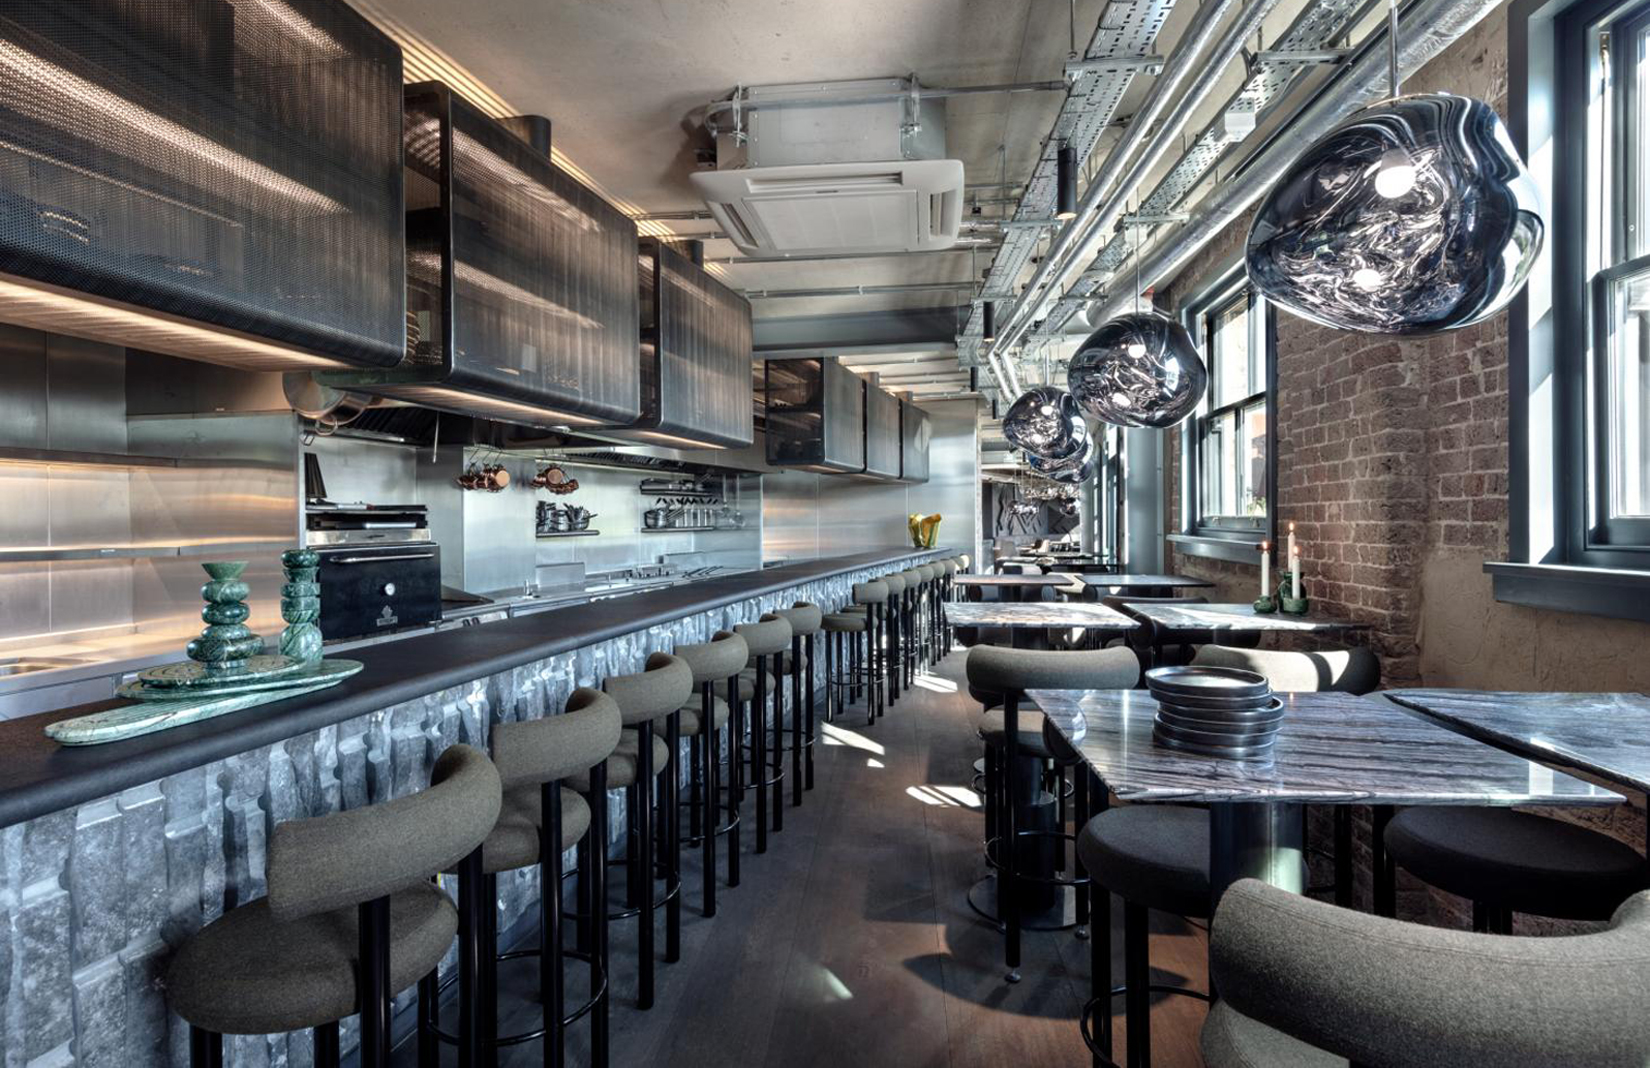 Wondrous Tom Dixons Testbed London Restaurant The Coal Office Opens Gmtry Best Dining Table And Chair Ideas Images Gmtryco